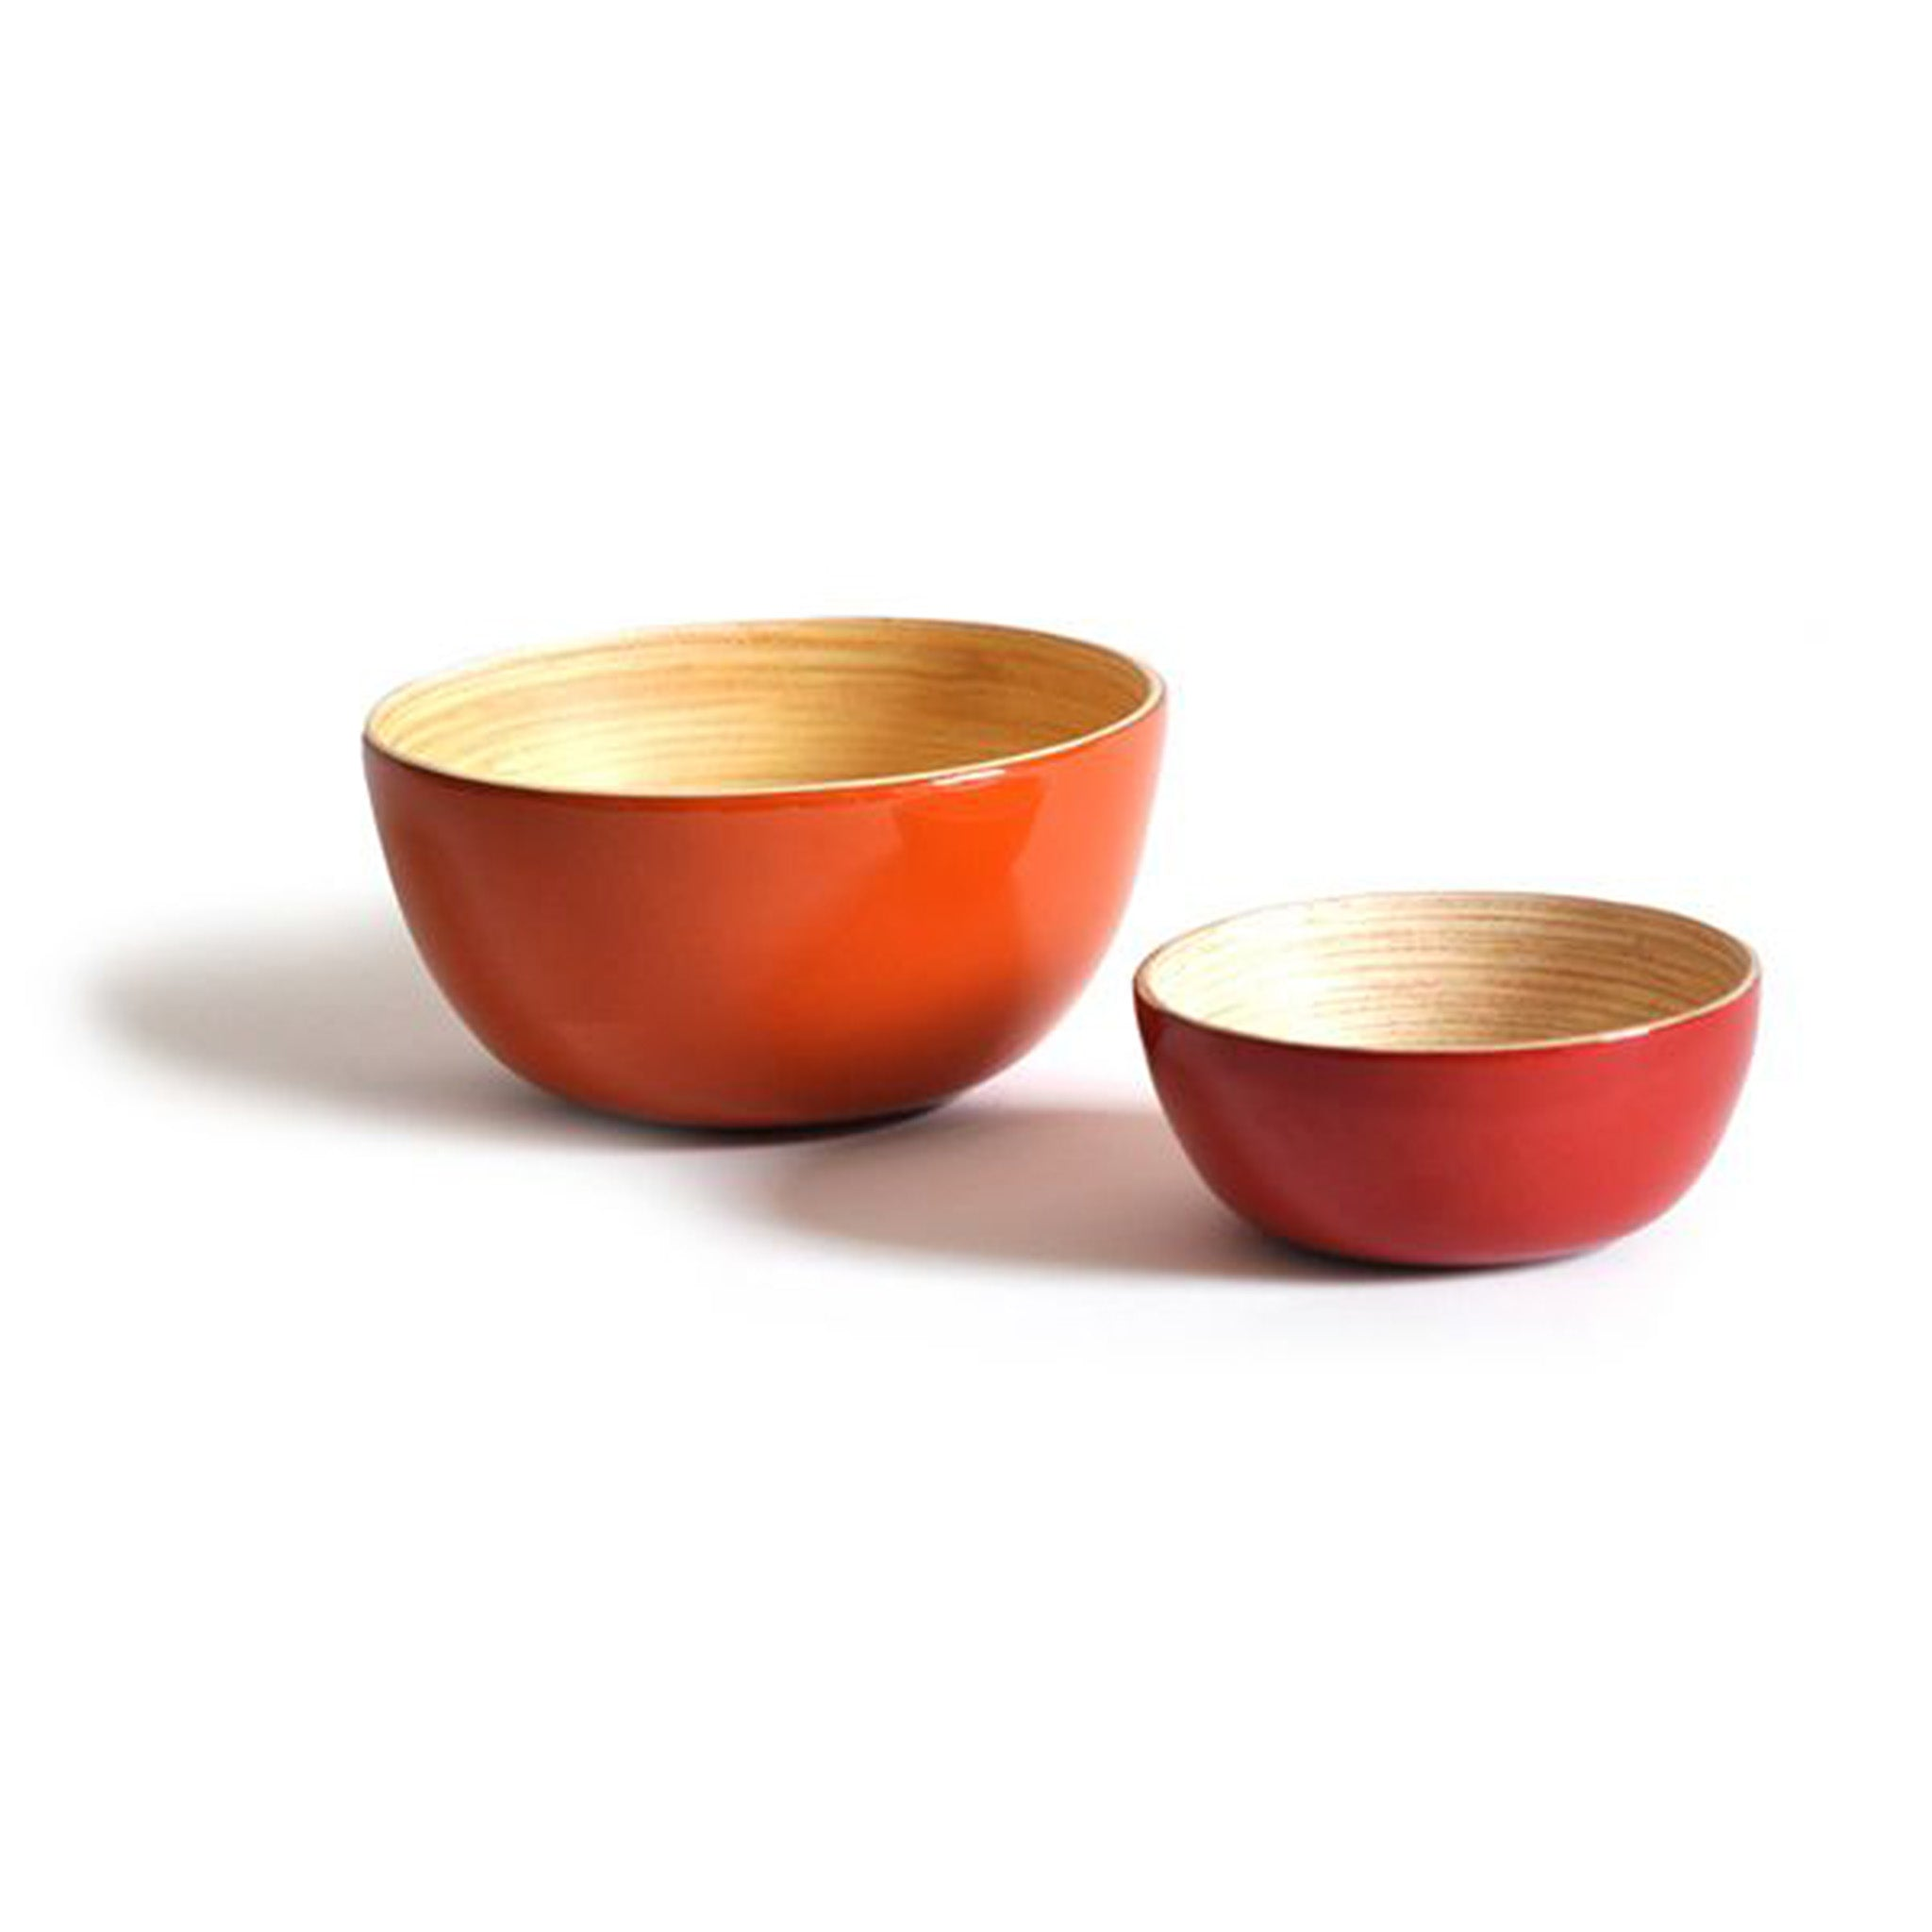 Bo Bowls by Ekobo and available at Abode New York